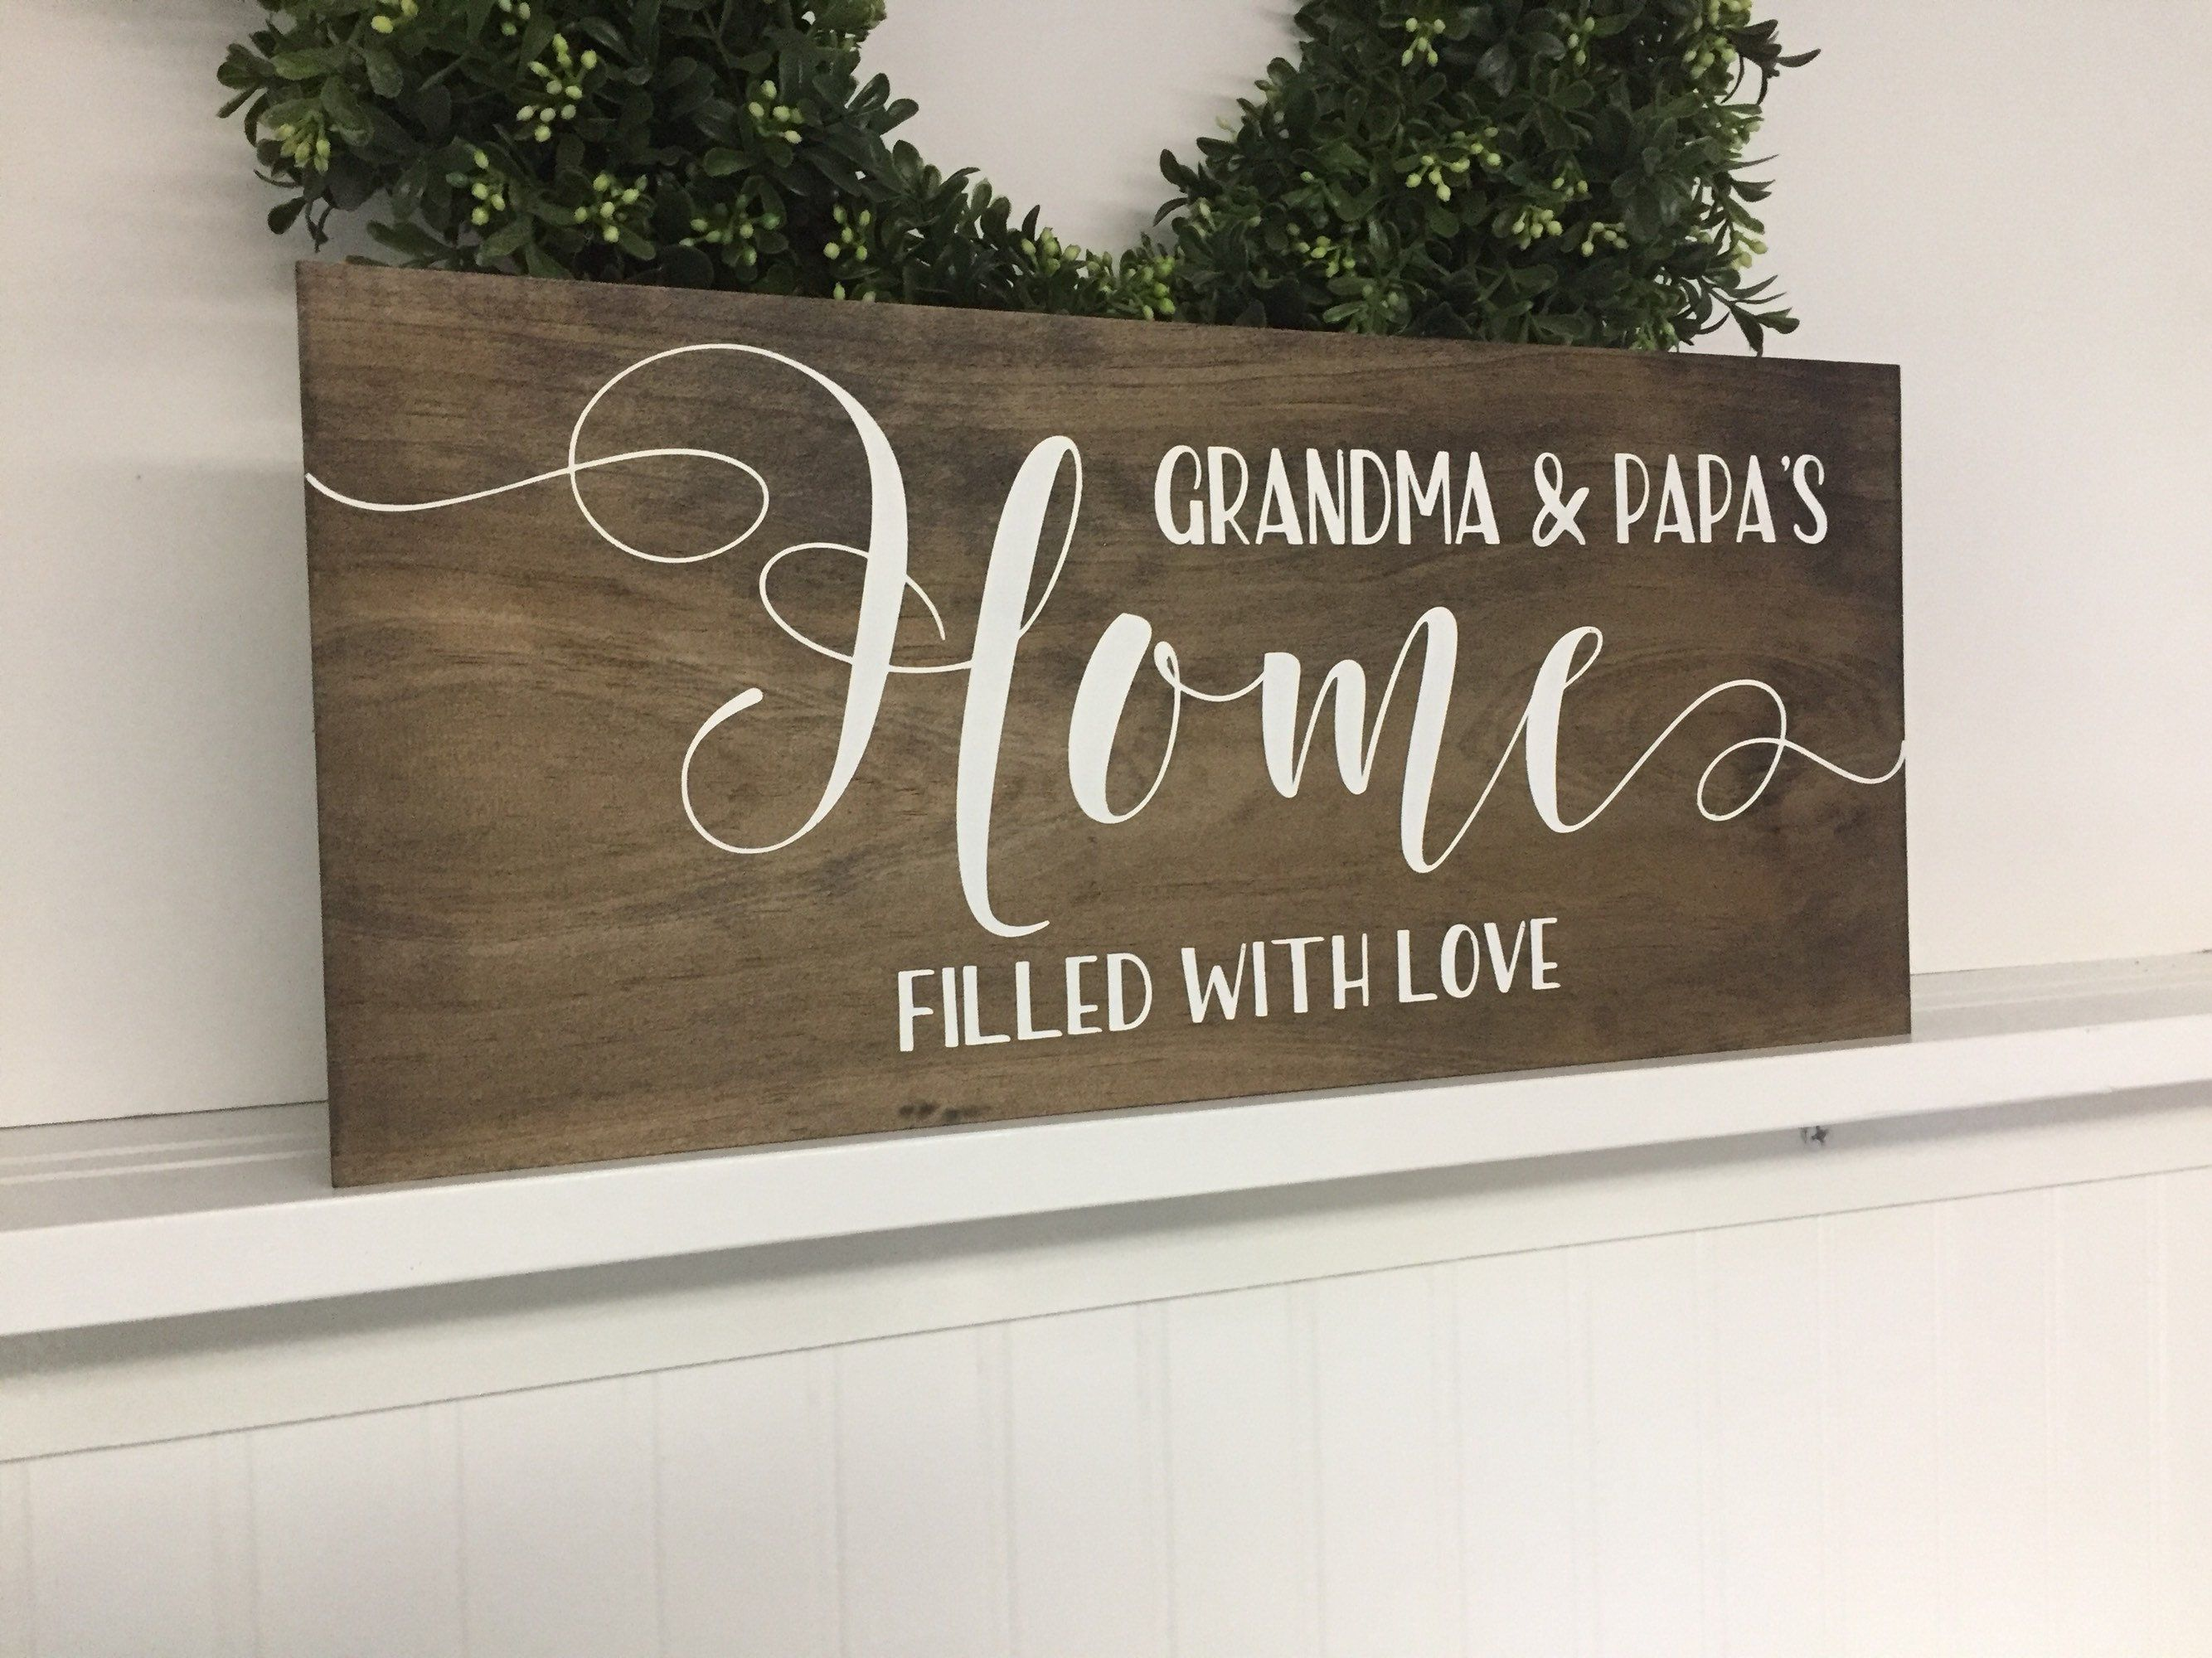 Grandma and Grandpa name wood sign, Christmas Gift for Grandparents, new grandma gift, pregnancy announcement for new grandparents #bestgiftsforgrandparents